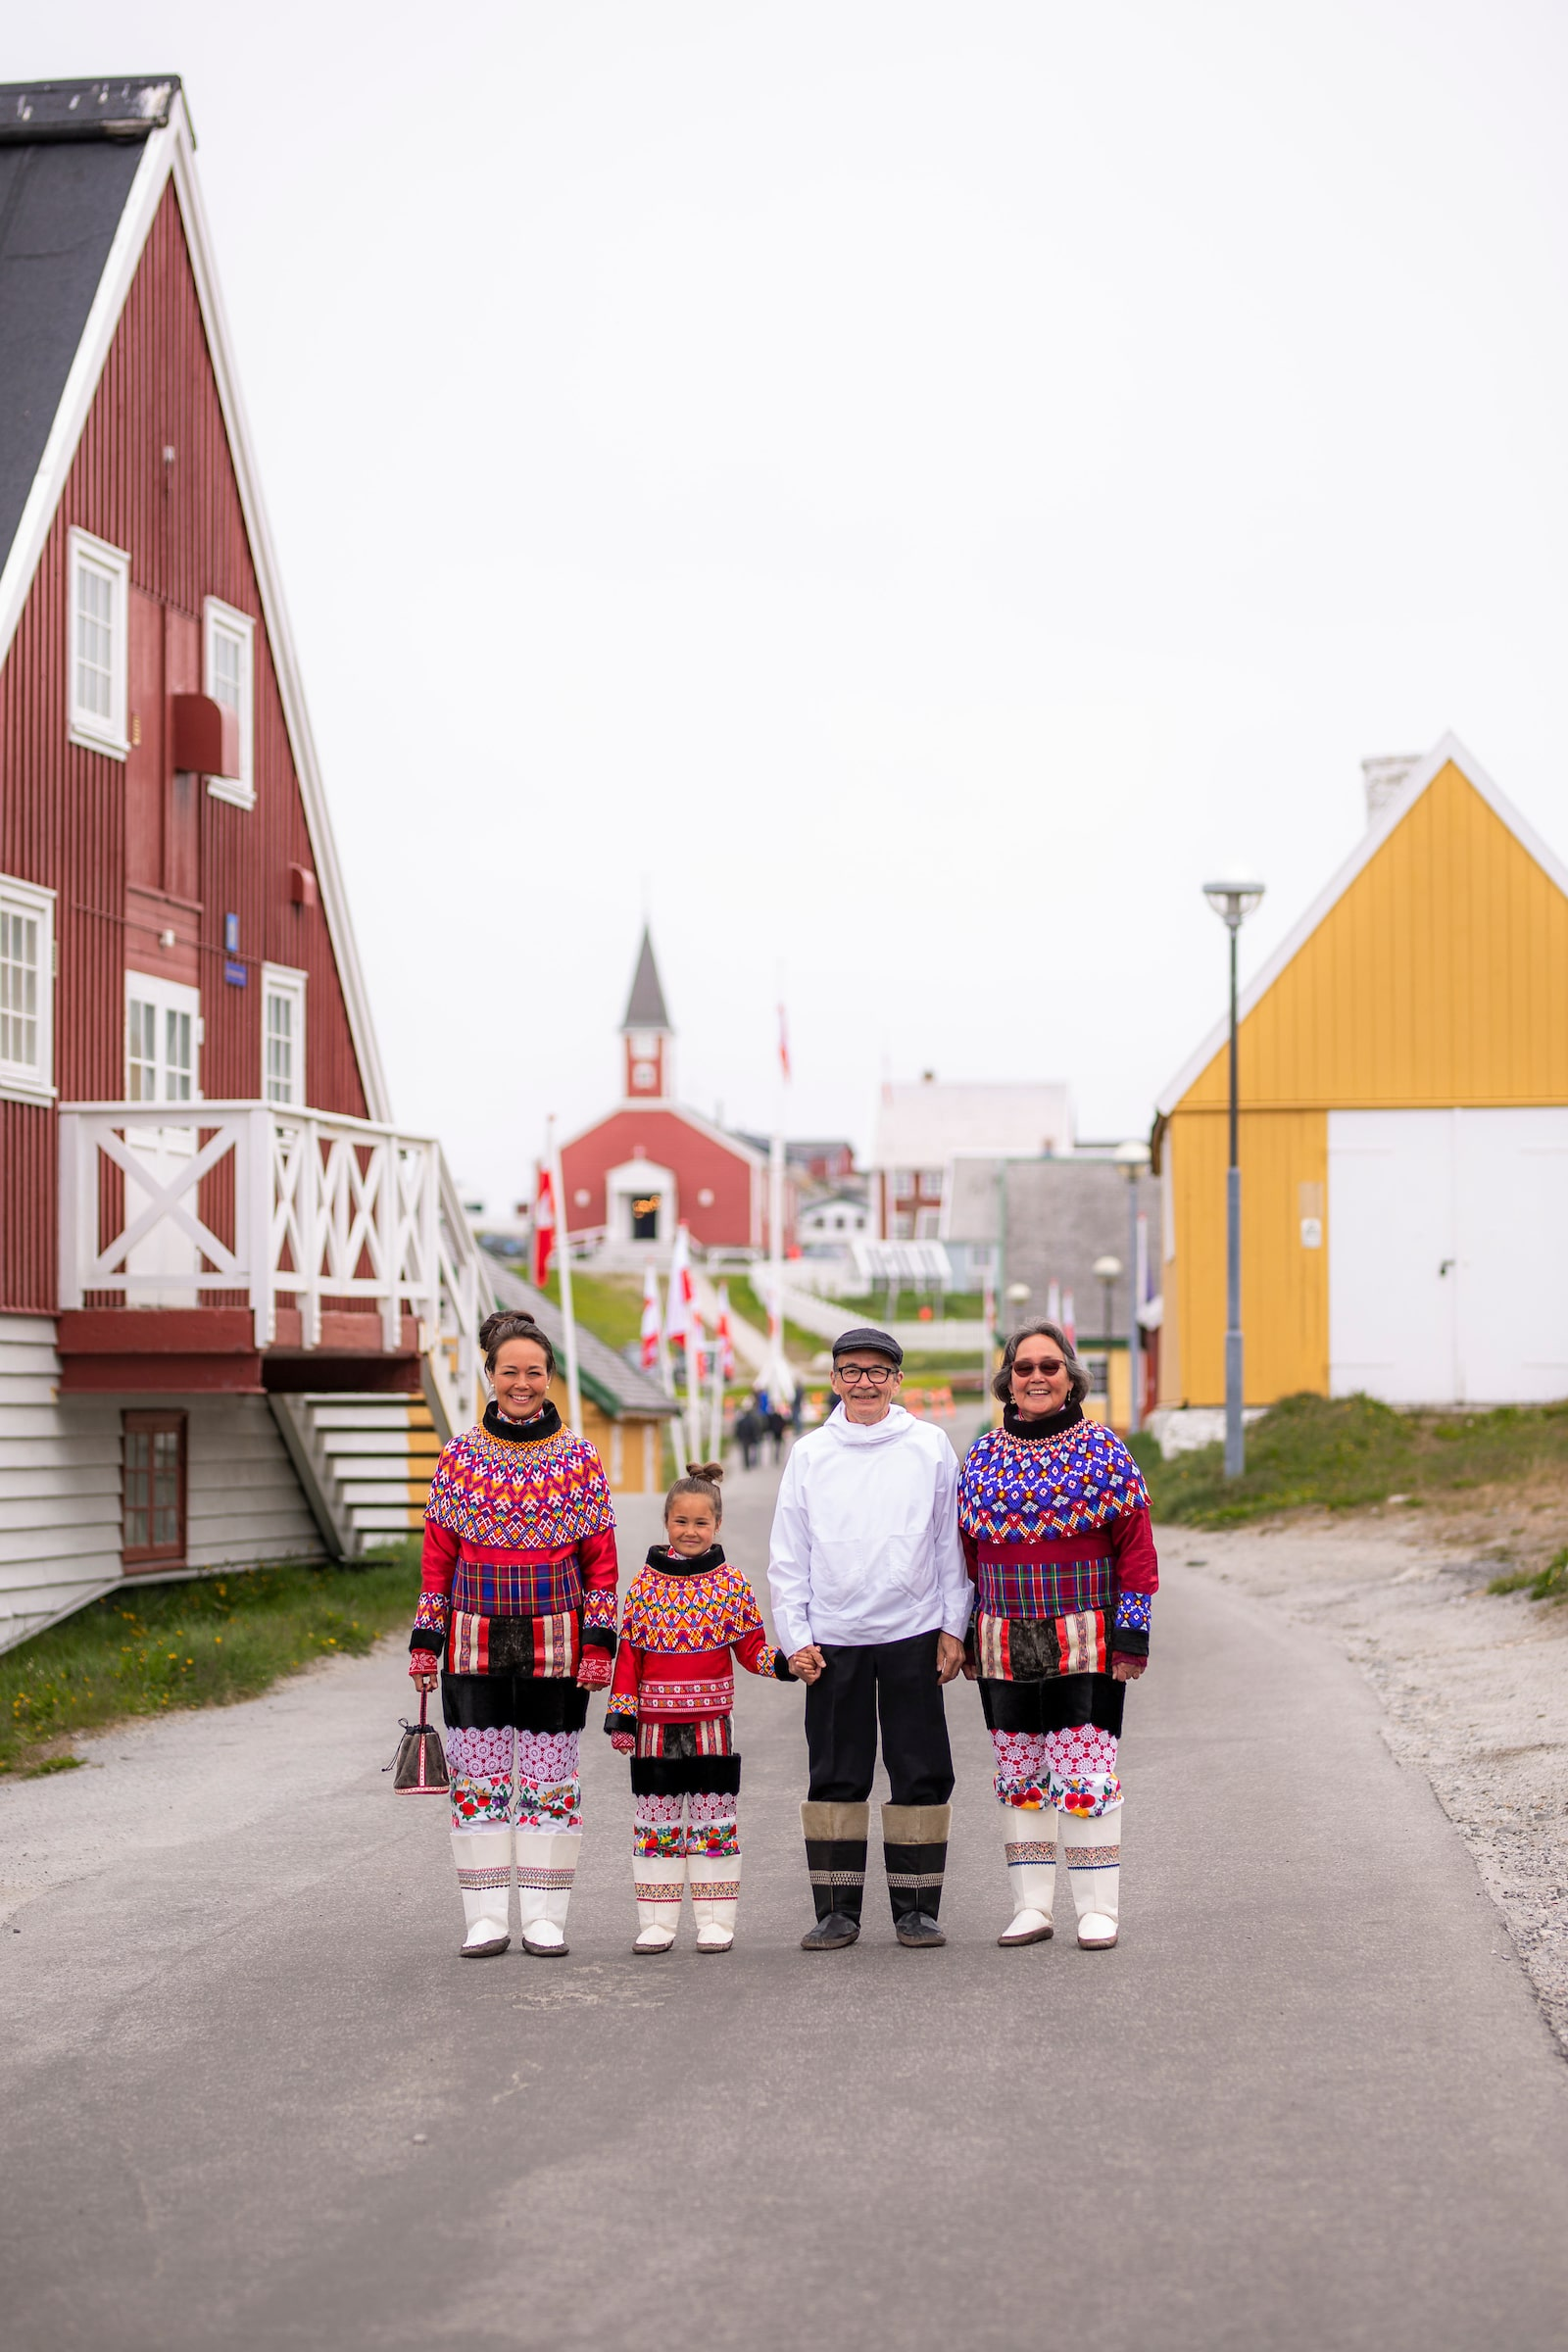 The National Day In Their National Clothing. Photo by Aningaaq R Carlsen - Visit Greenland